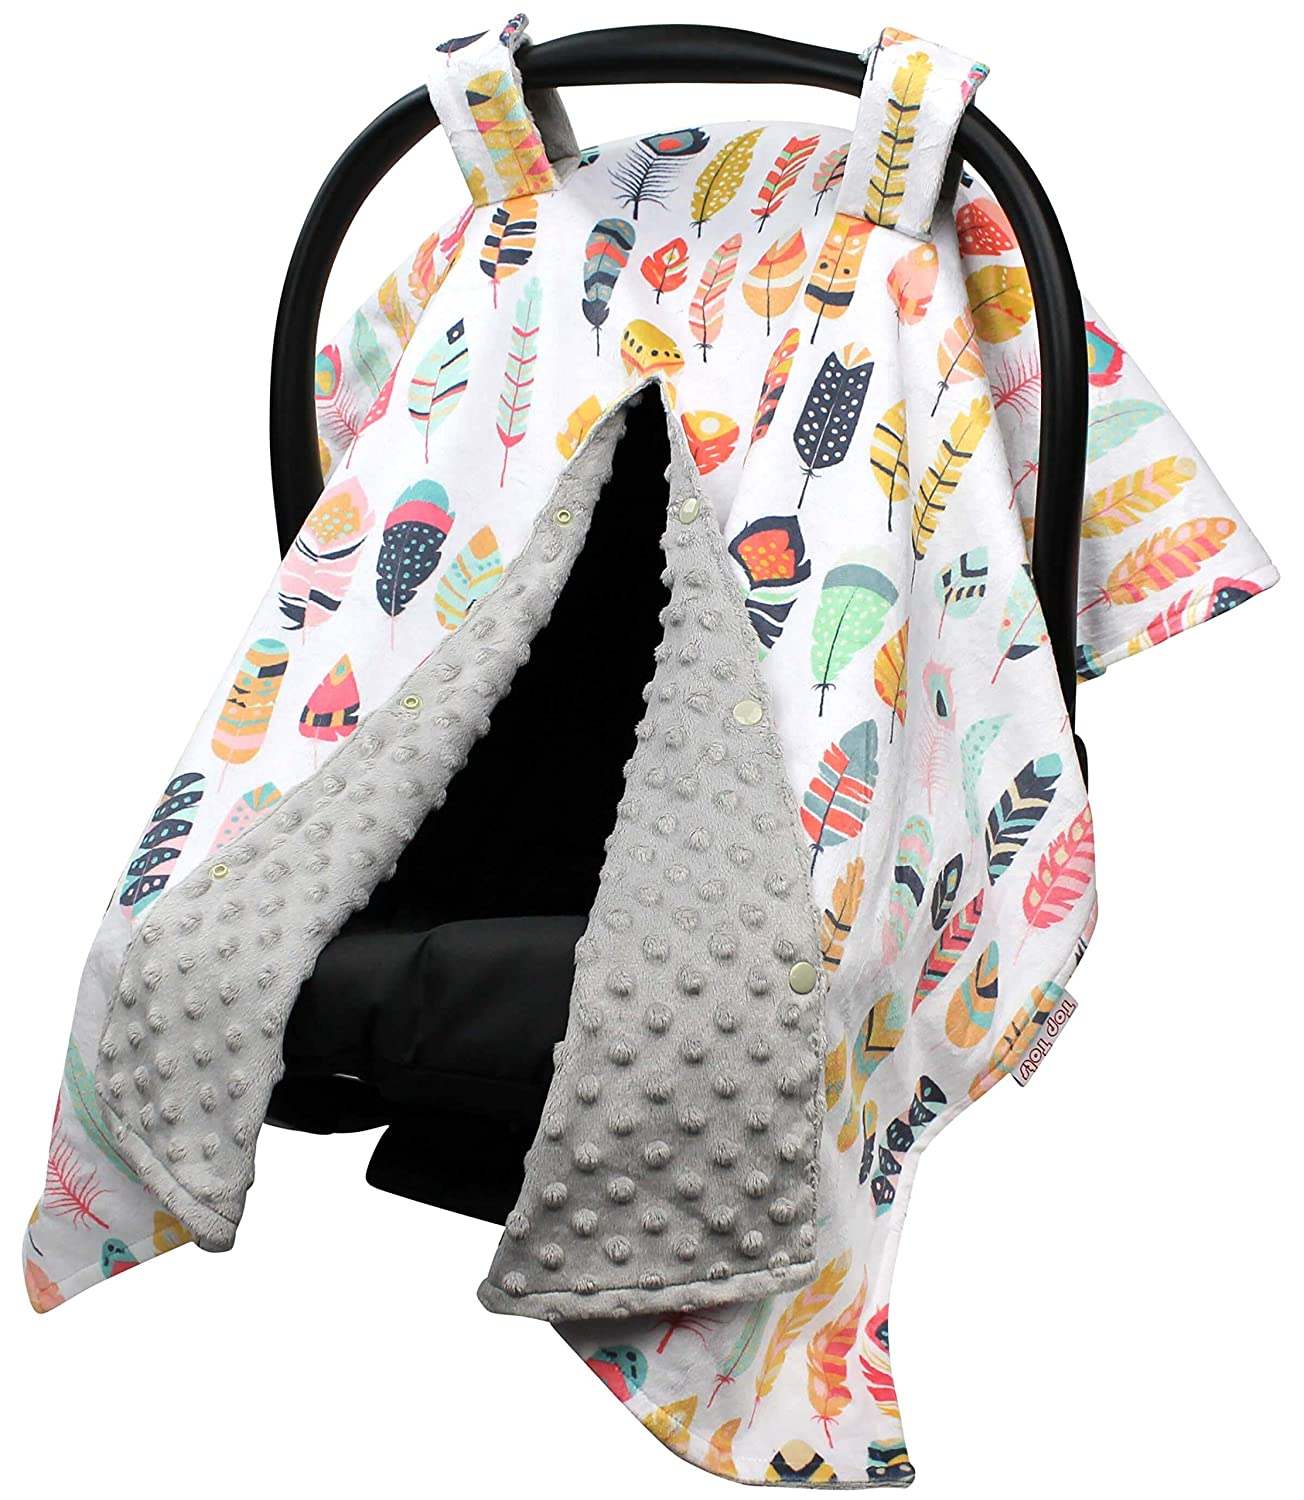 Top Tots Includes 1-Year Warranty, Arrows and Feathers Collection, Deluxe Car Seat Canopy, Assorted Feathers on White, 40 by 29 Inch